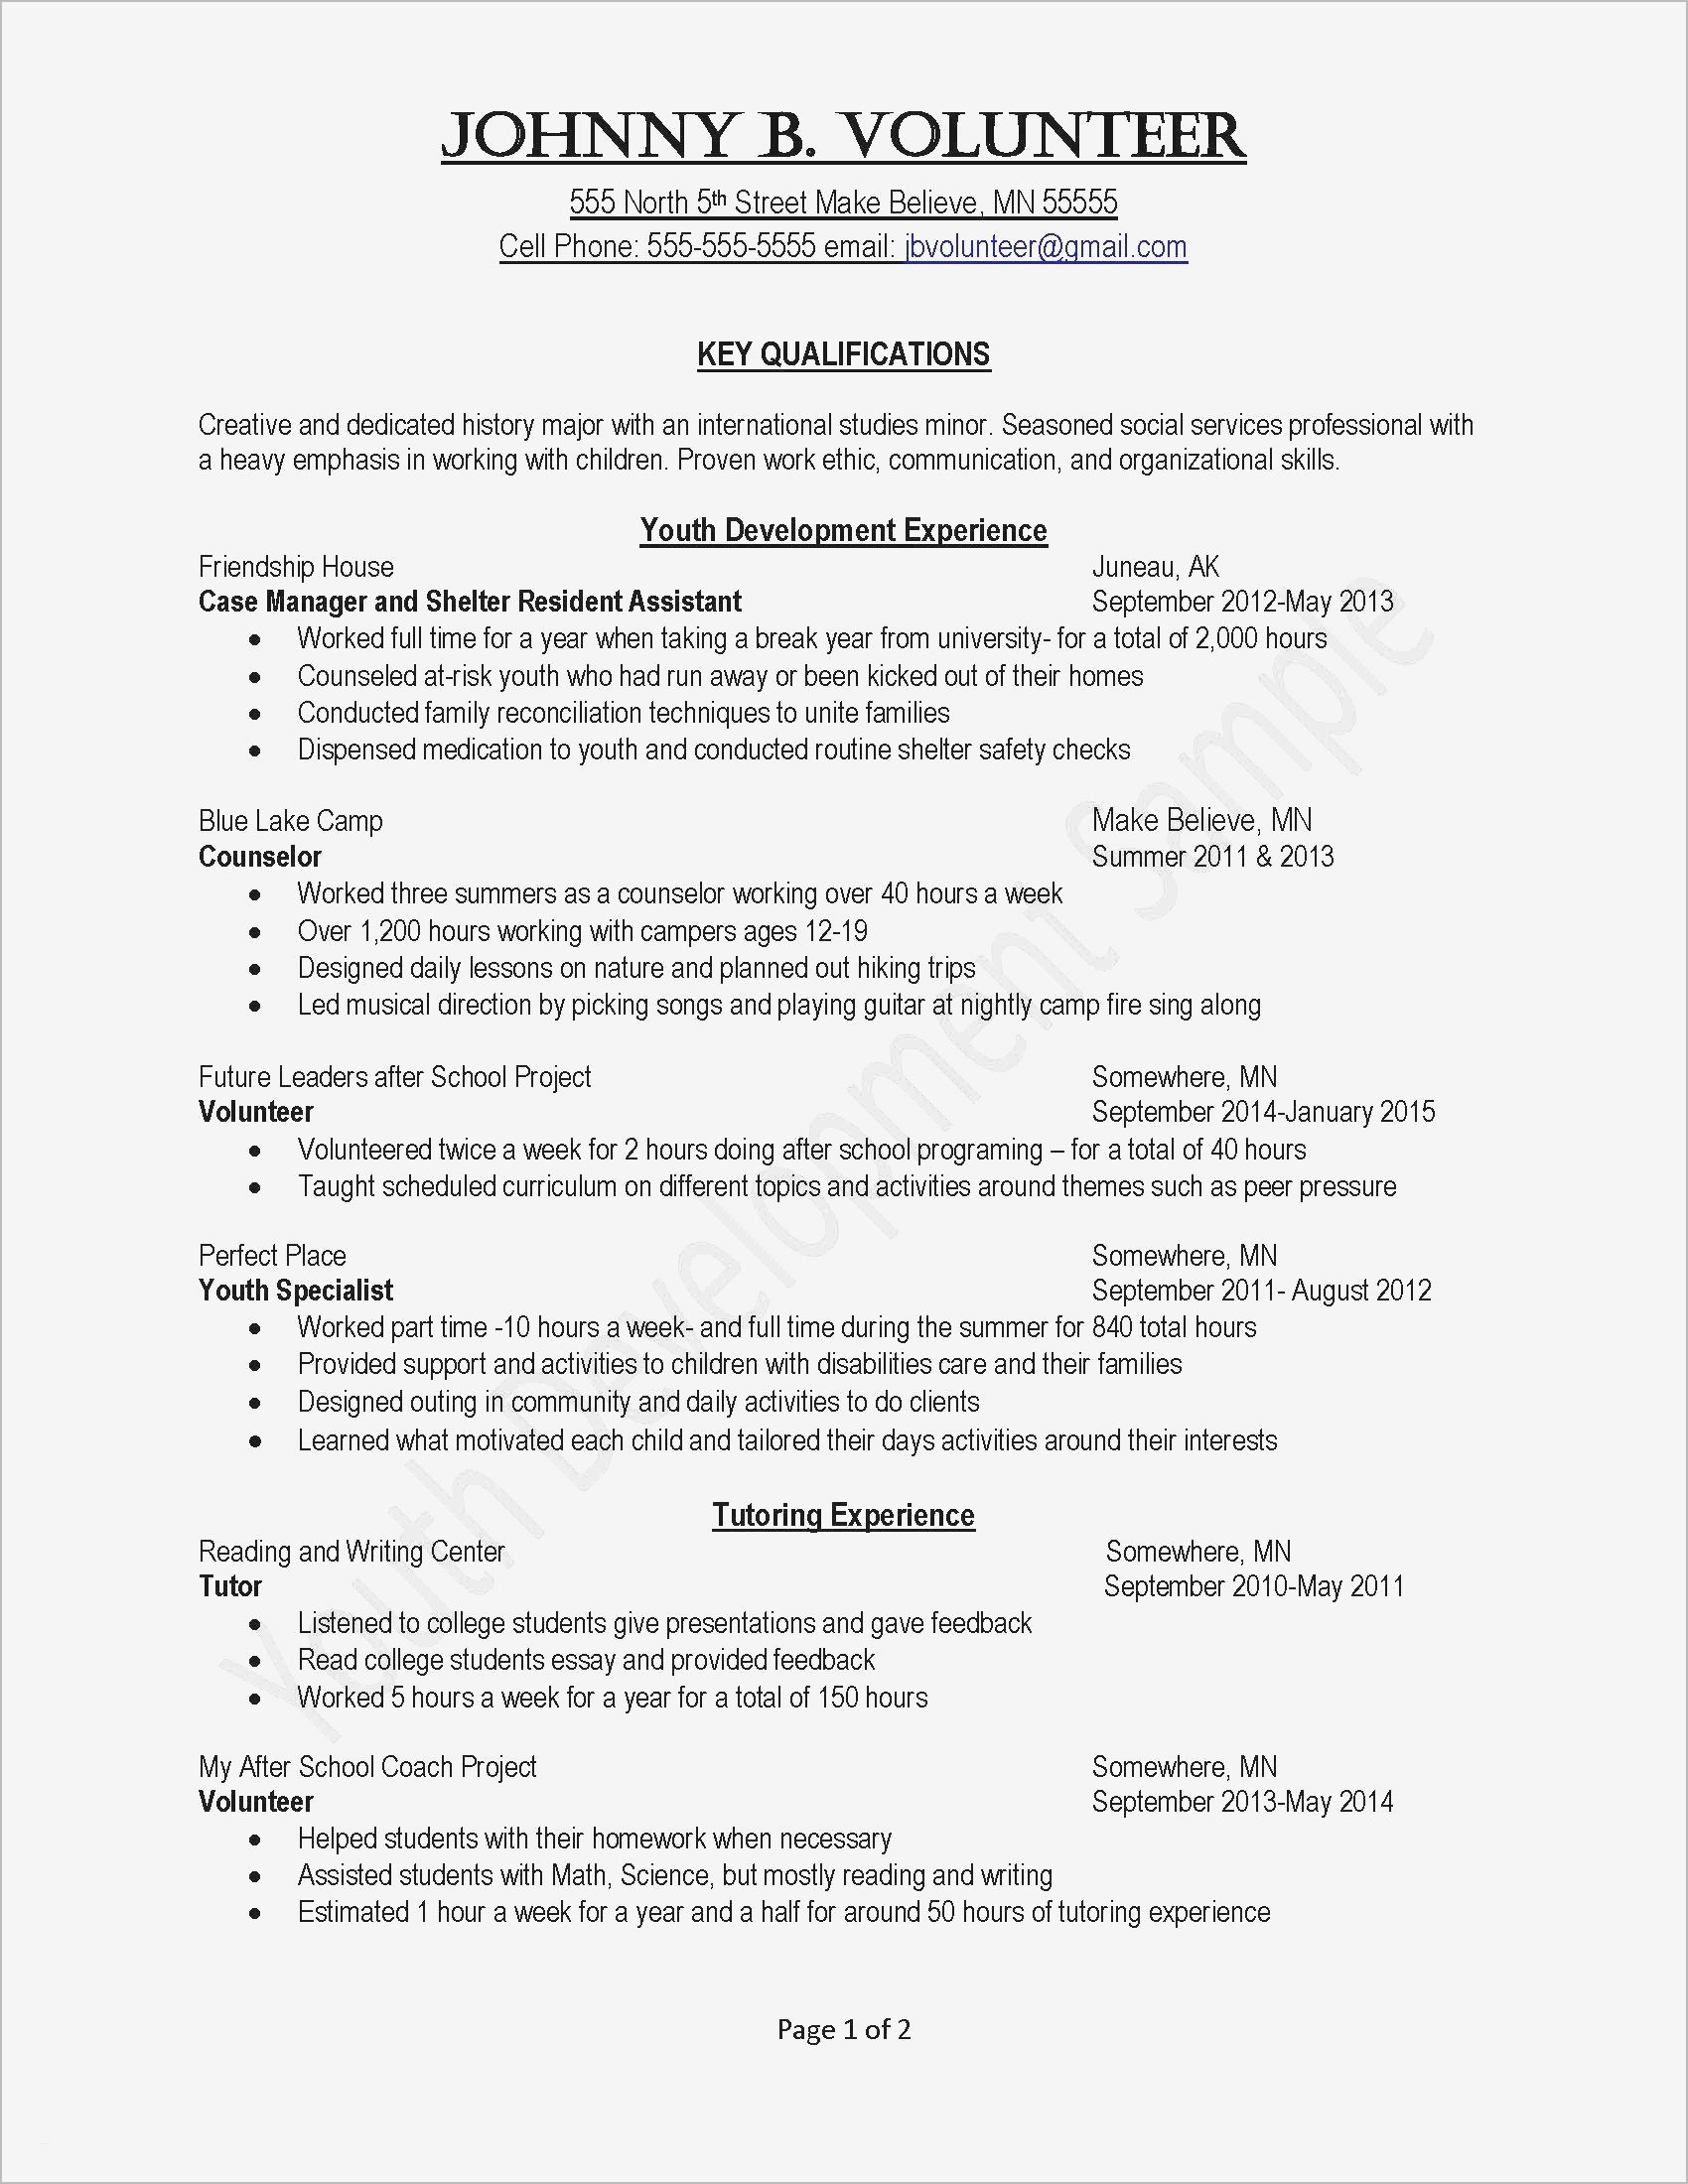 free introduction letter template example-Free Templates For Resumes And Cover Letters Best Job Fer Letter Template Us Copy Od Consultant Cover Letter Fungram 3-f